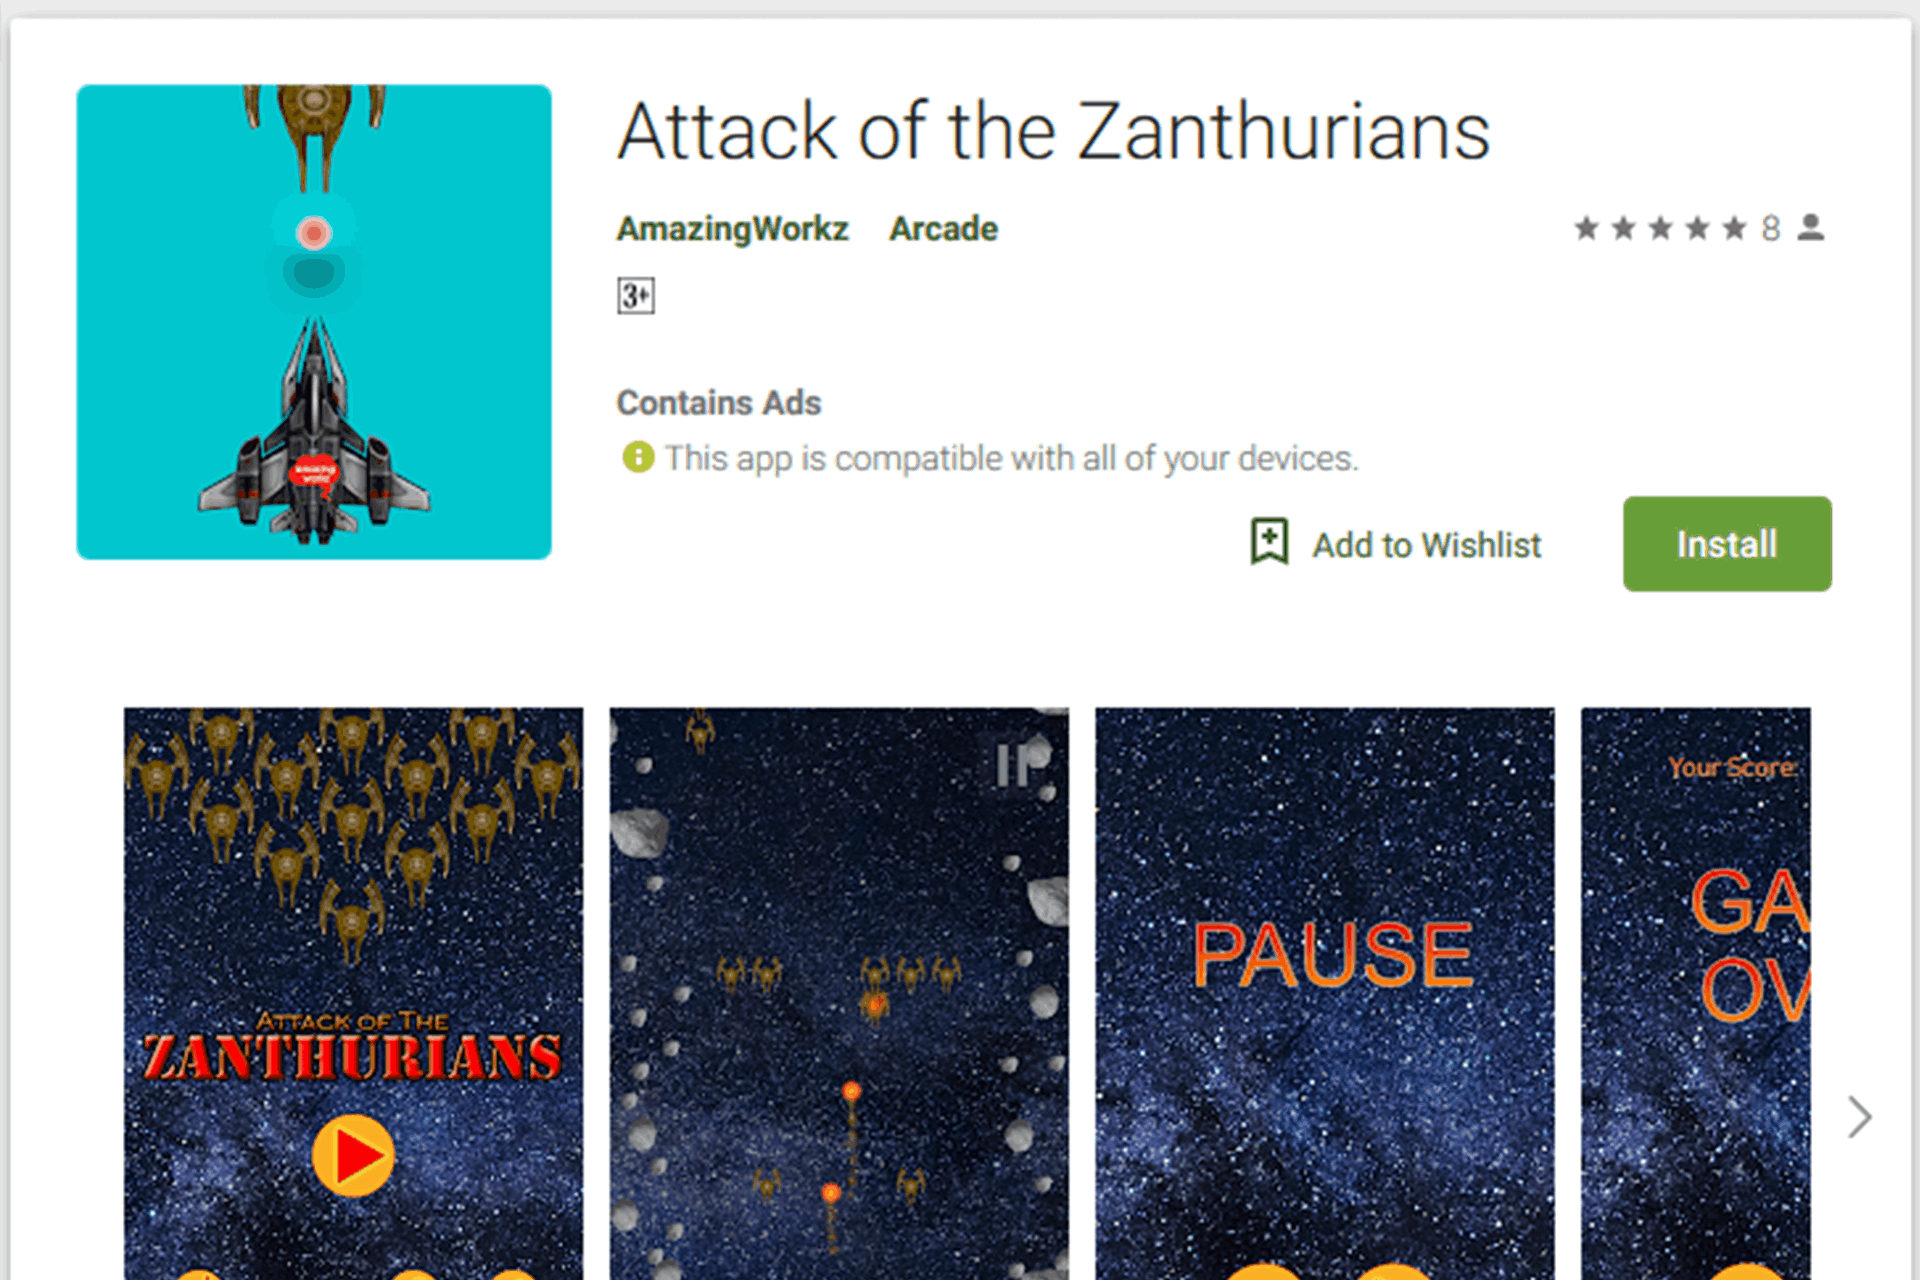 Attack of the Zanthurians